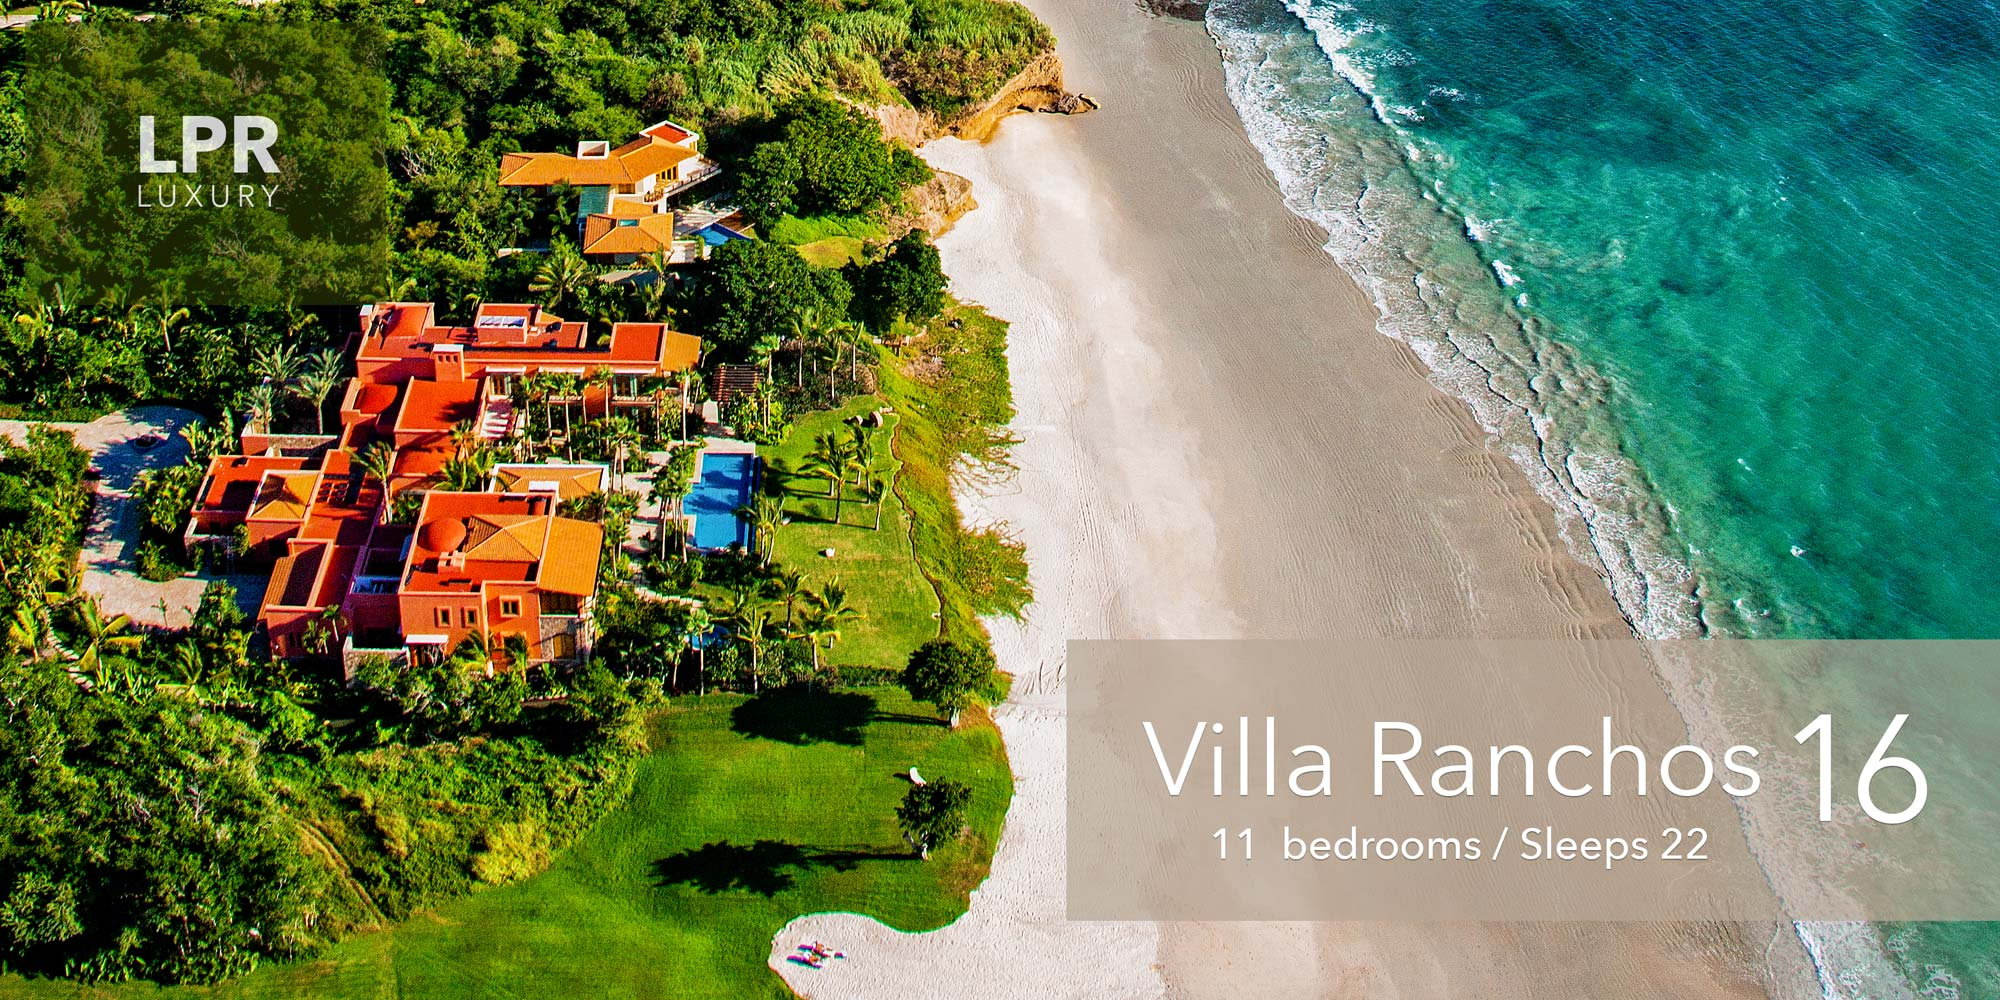 Villa Ranchos 16 - Ultra Luxury beachfront vacation rental villas for sale at the Punta Mita Resort - Punta Mita real estate